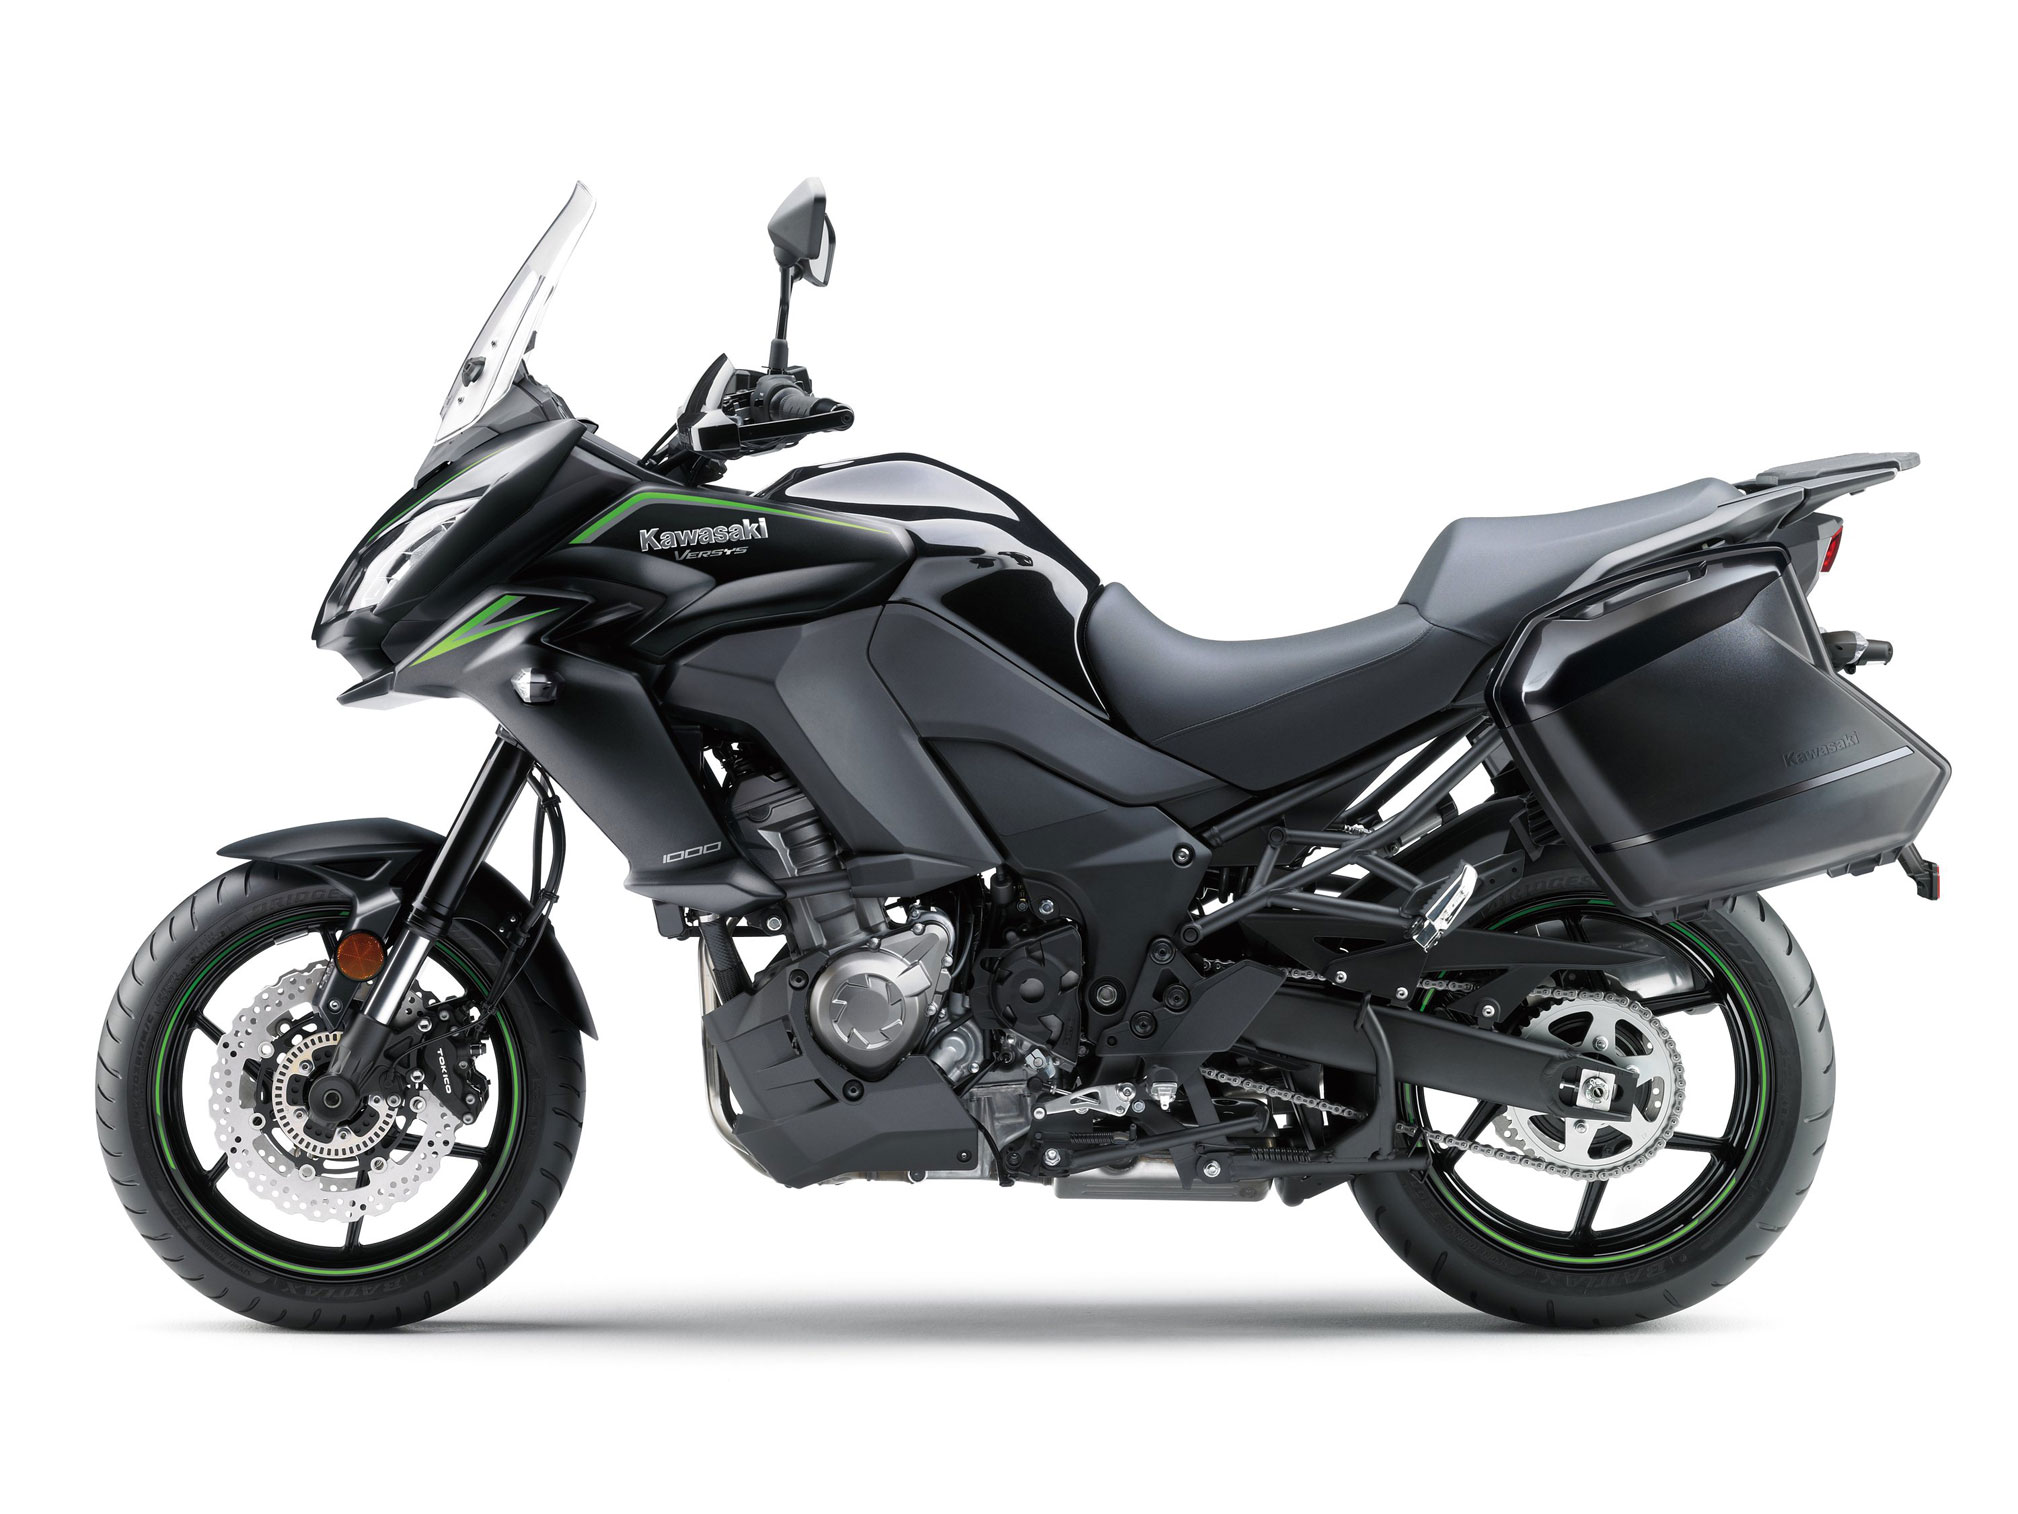 2018 kawasaki versys 1000 lt abs review totalmotorcycle. Black Bedroom Furniture Sets. Home Design Ideas